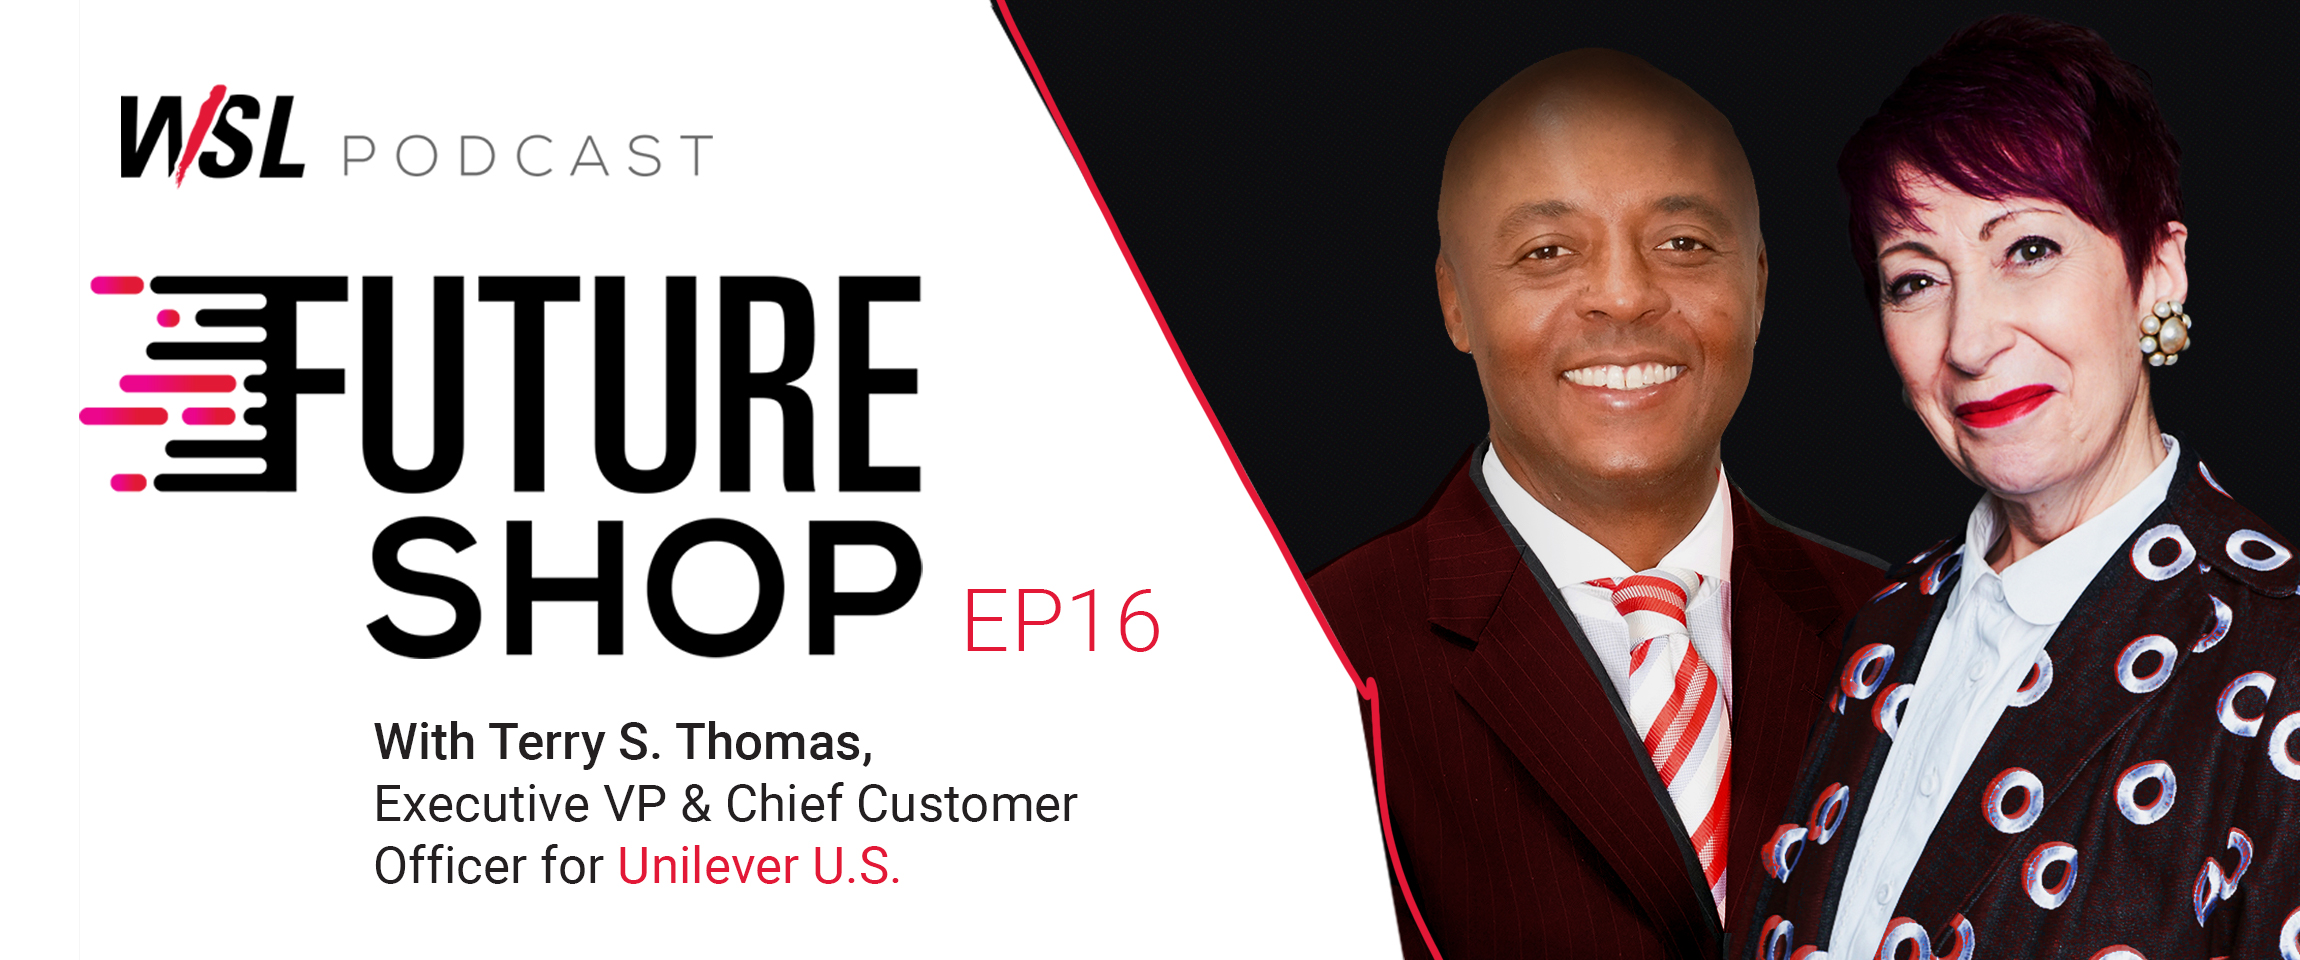 The Color of Retail | Future Shop Podcast EP16